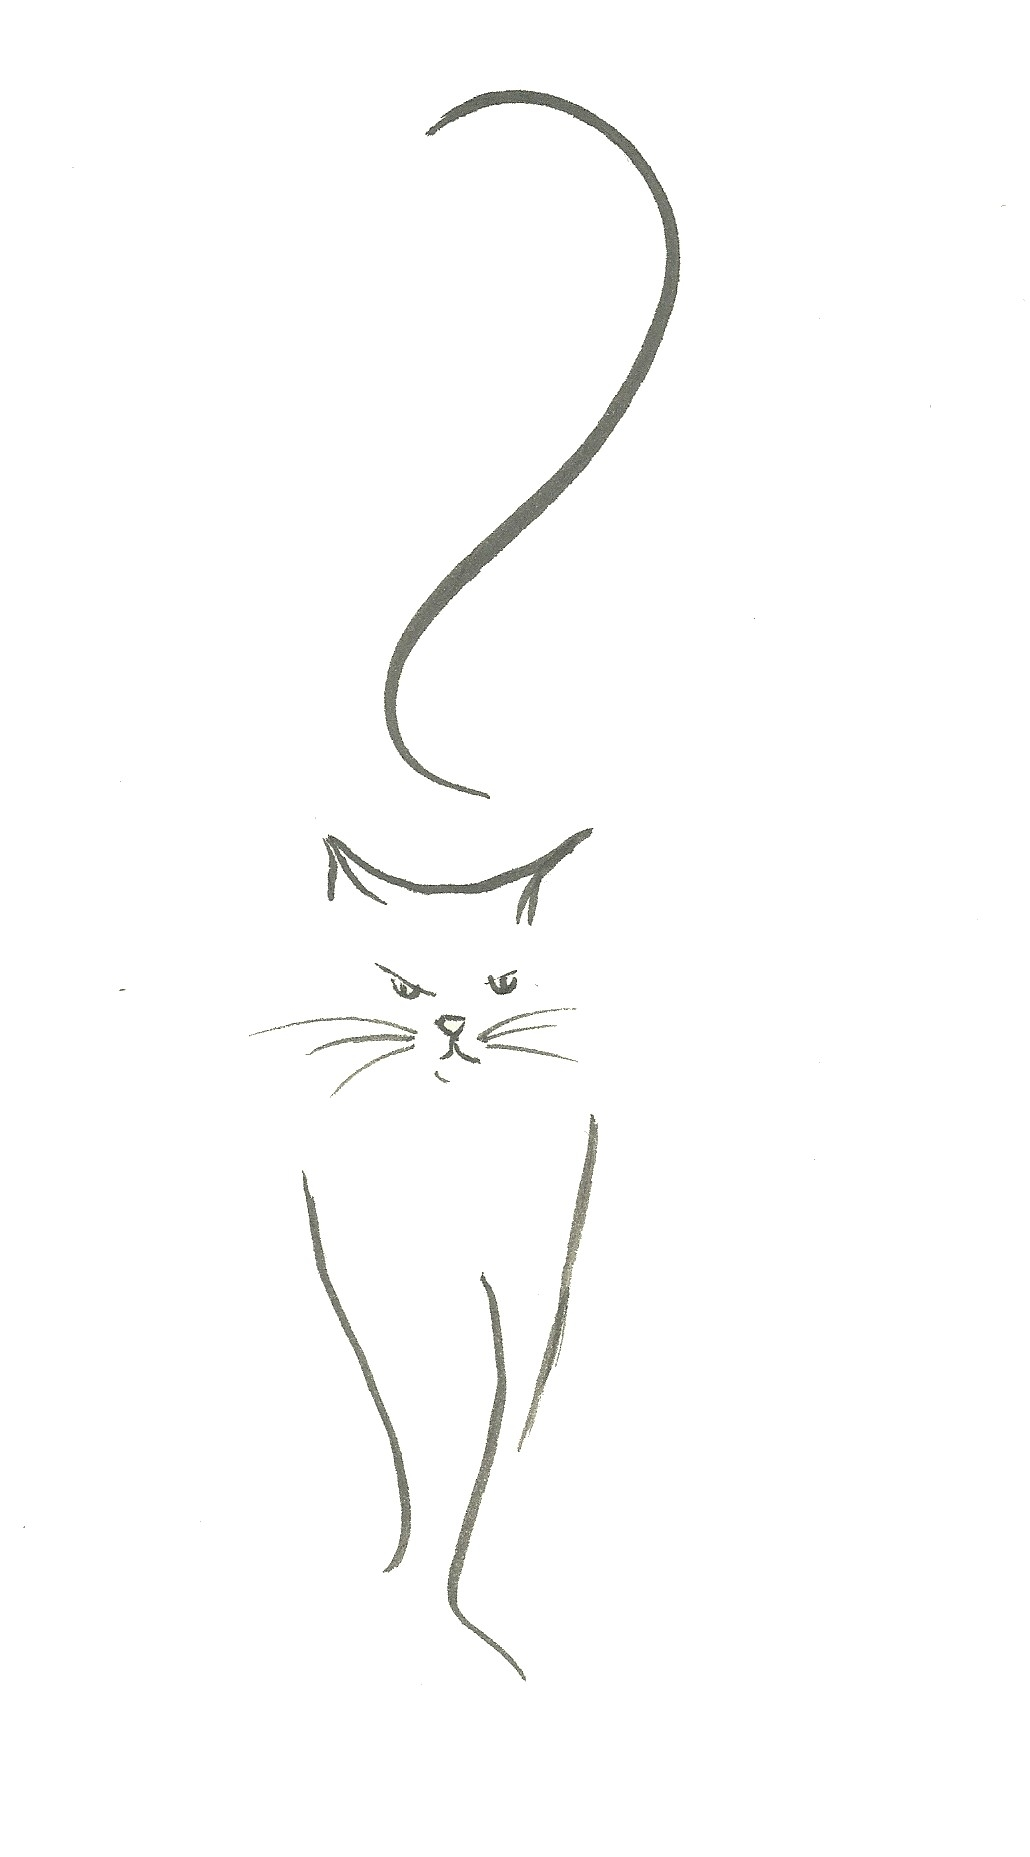 drawing of a cat walking